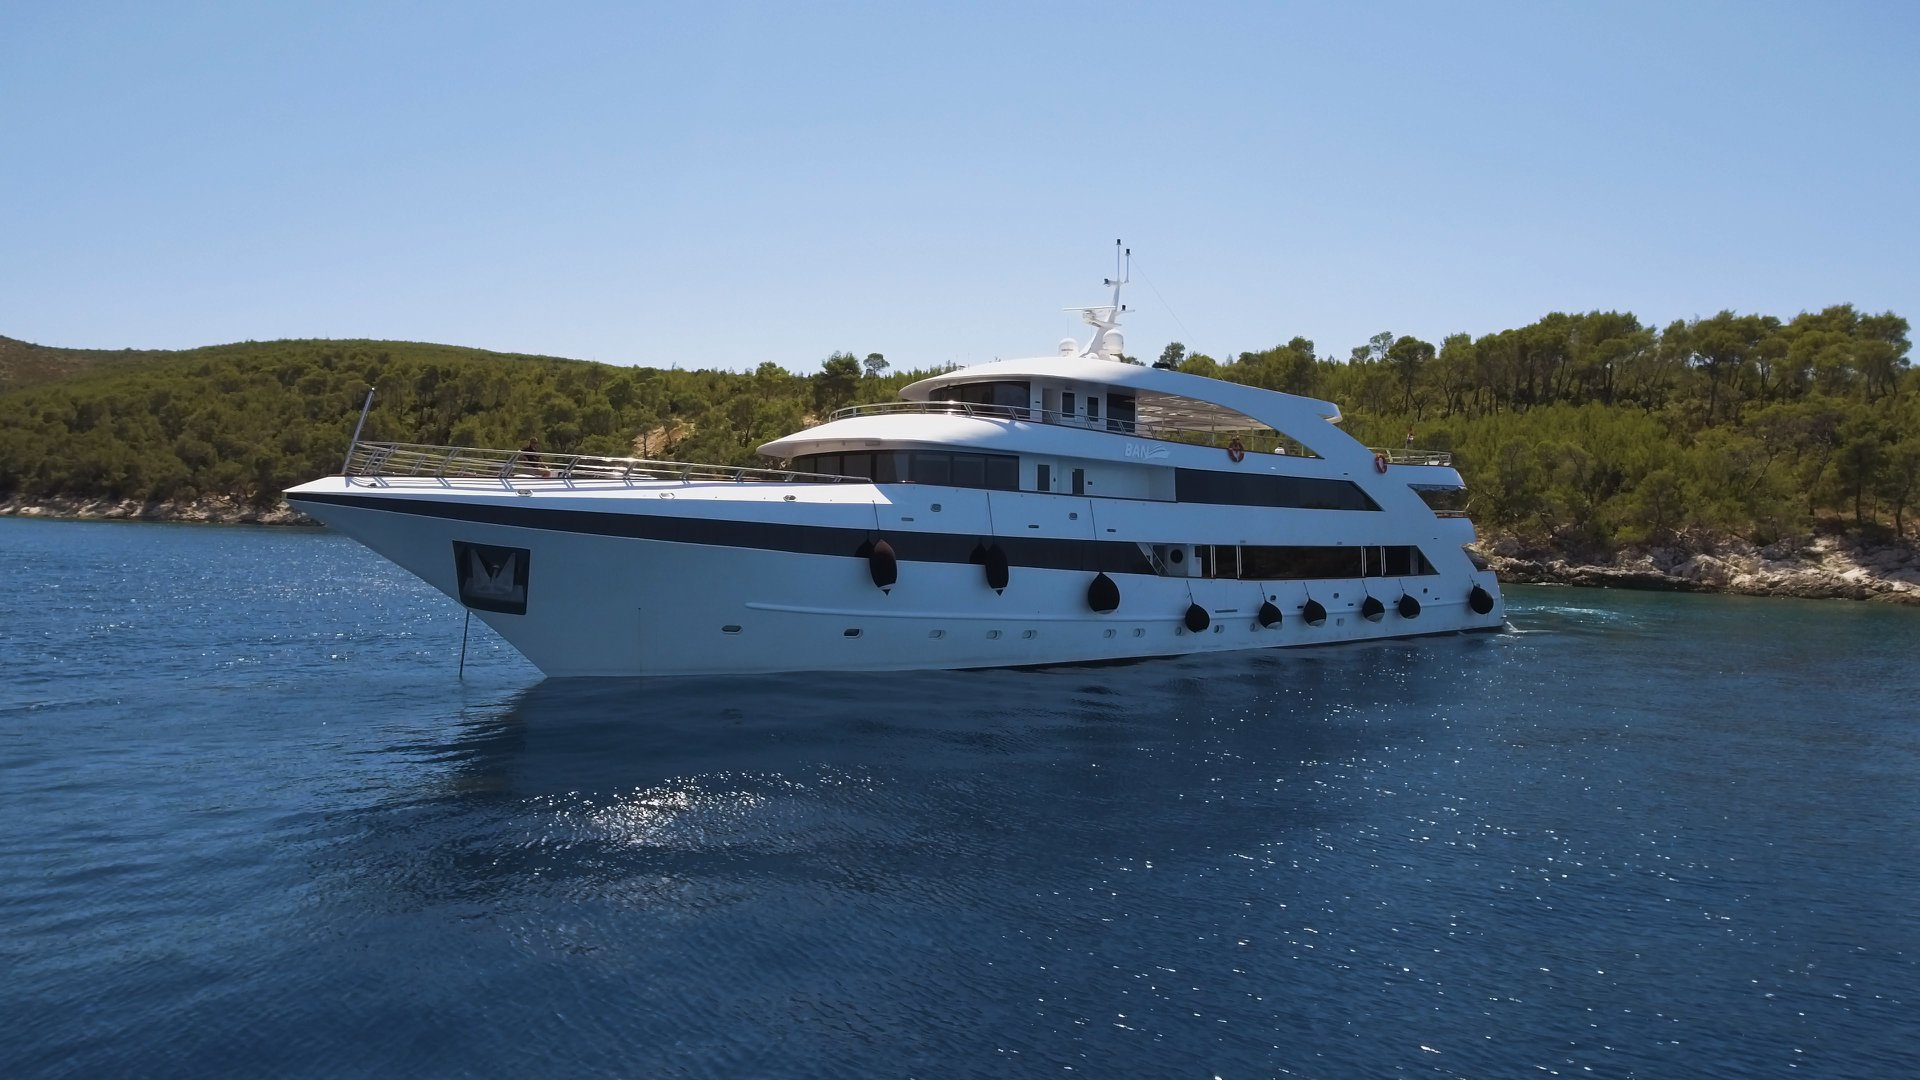 Adriatic Discovery Cruise from Dubrovnik to Split on Ban